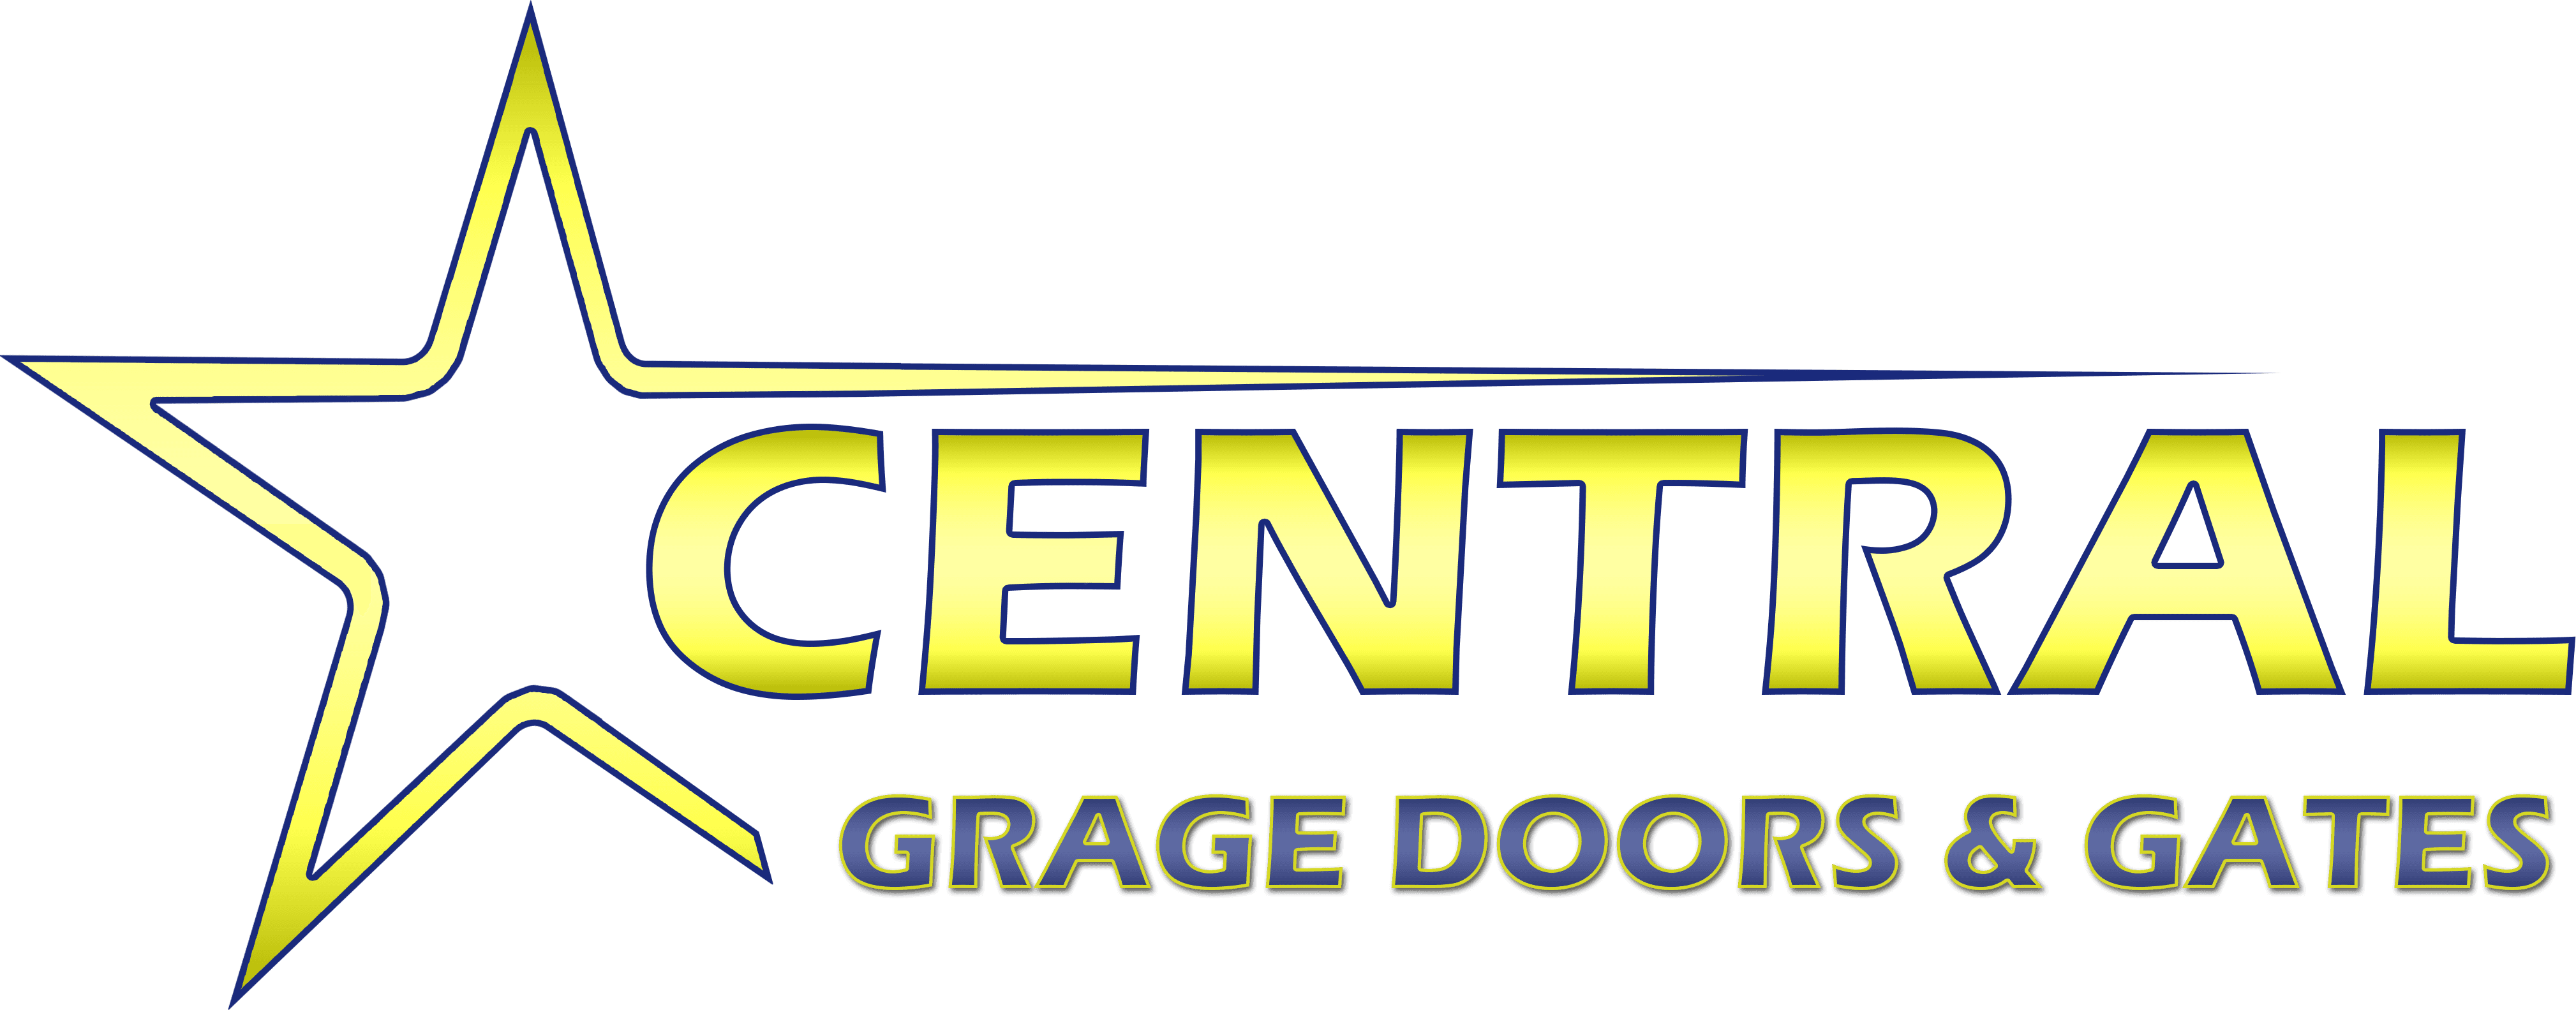 Central Garage Doors & Gates